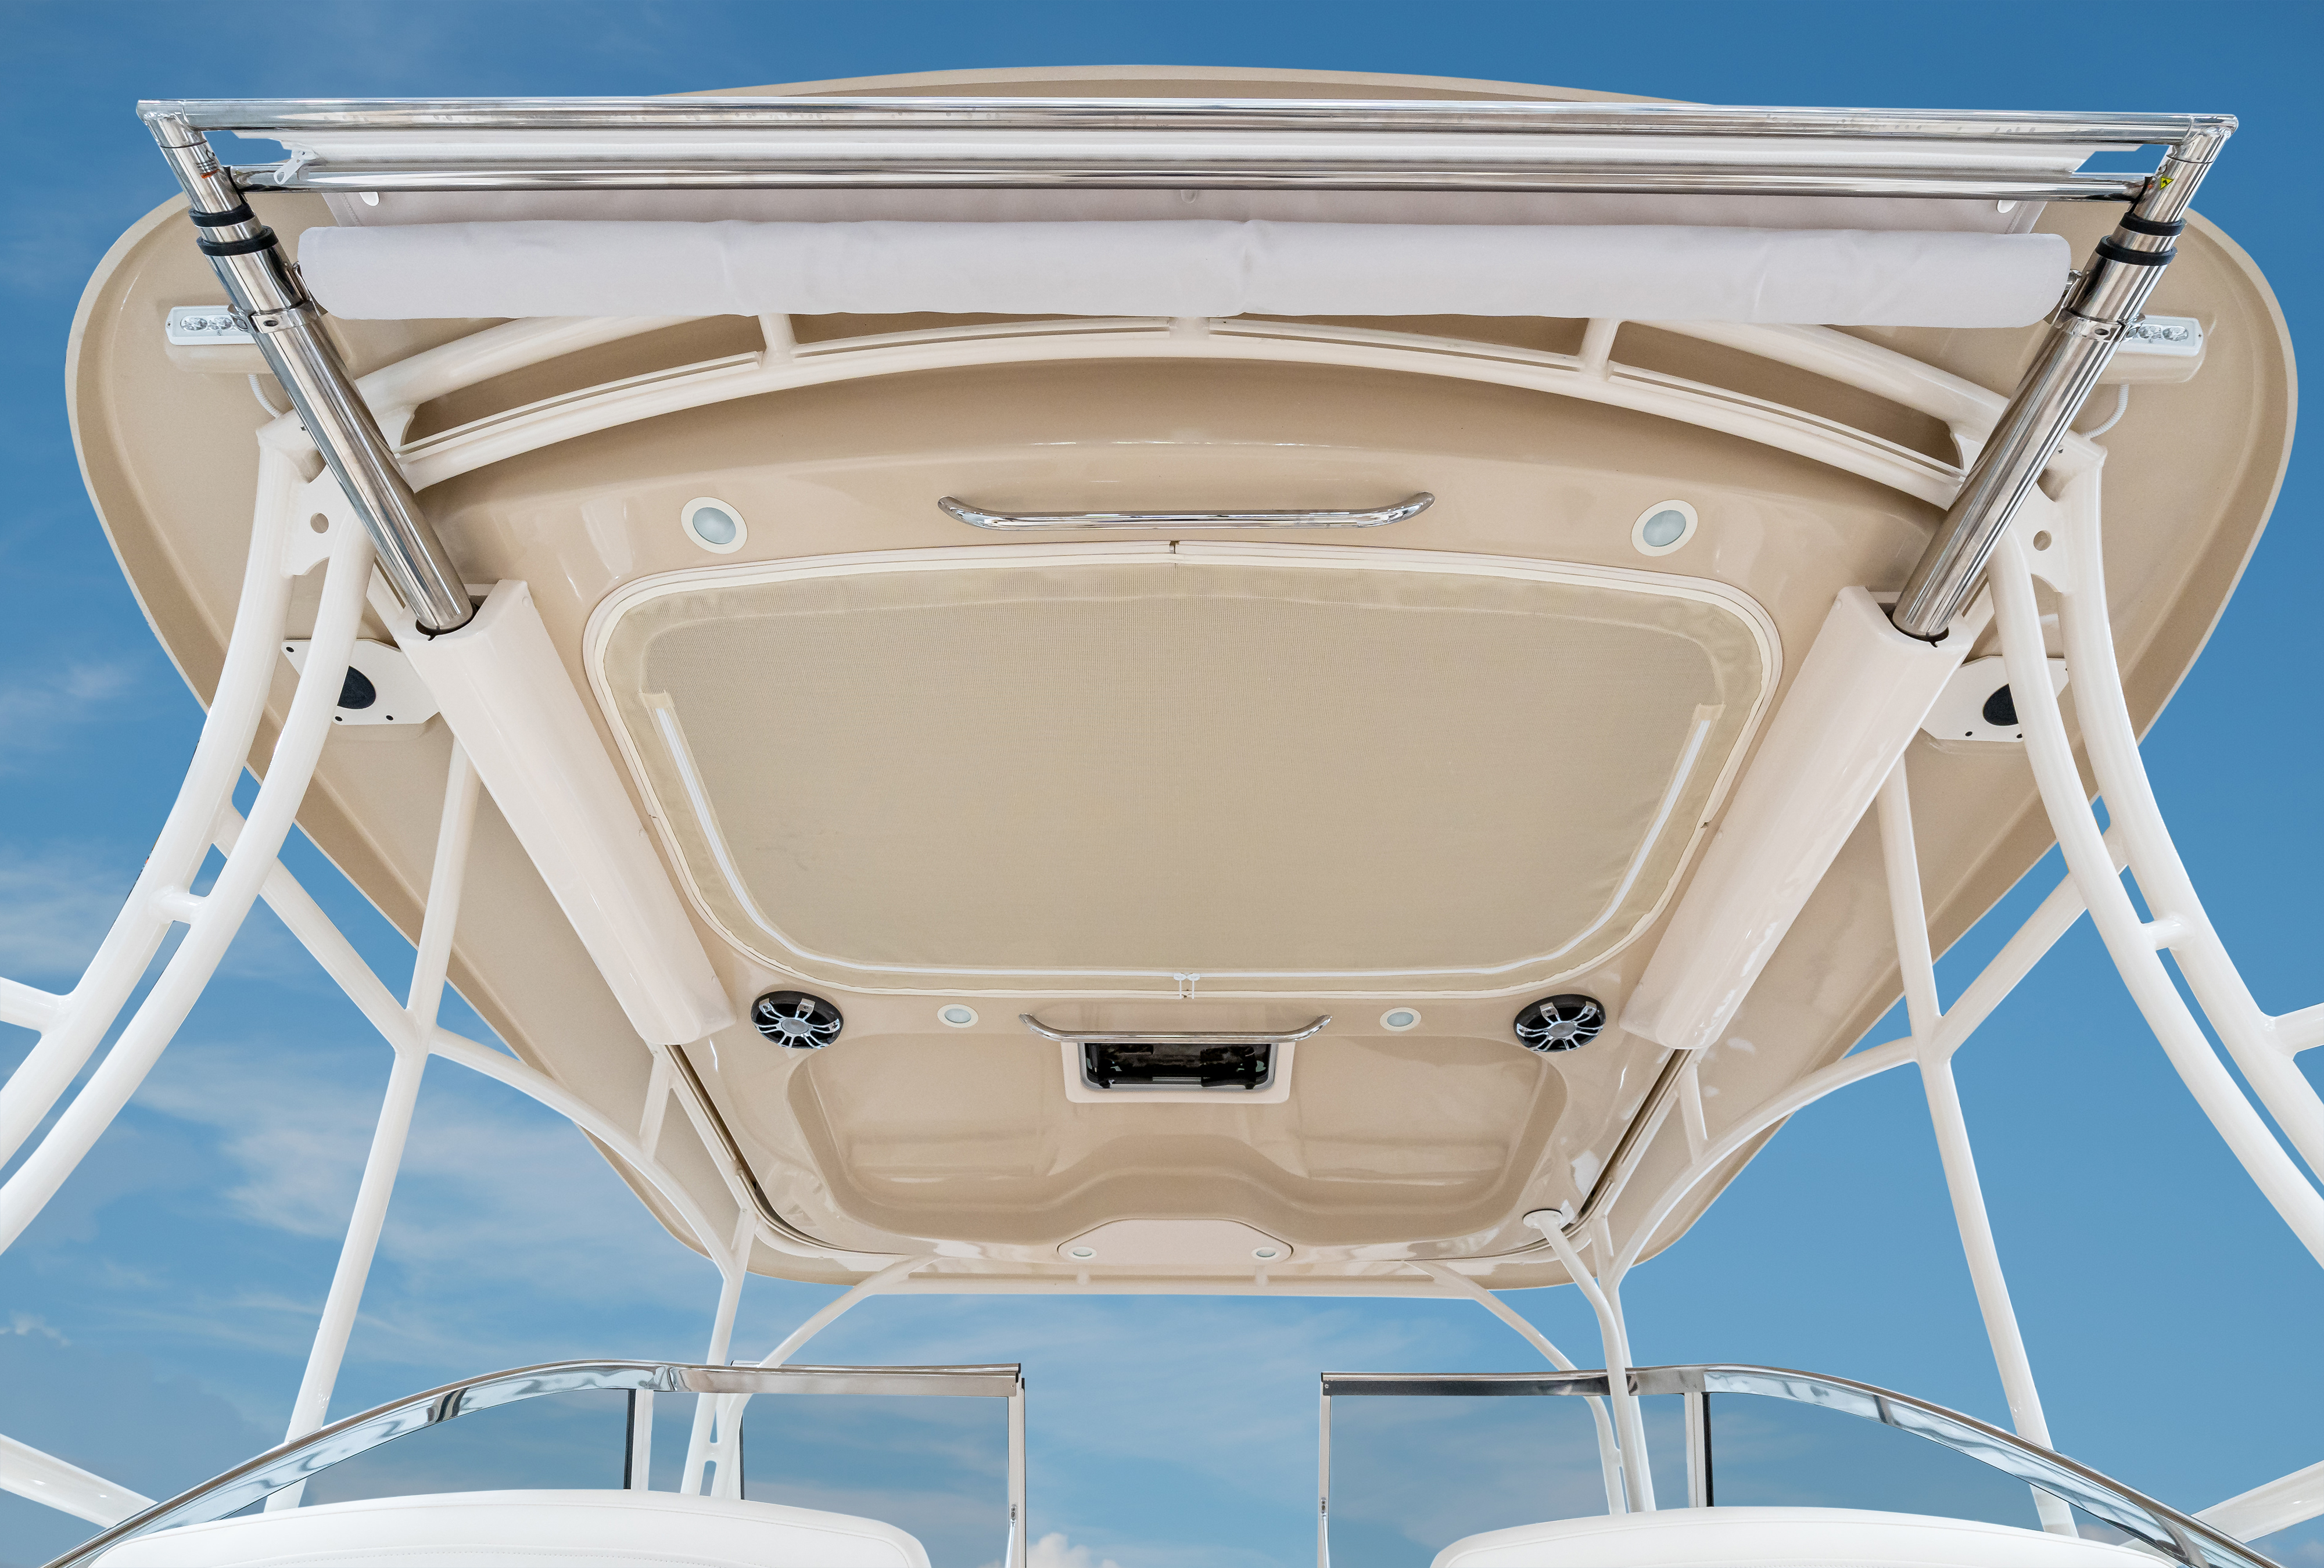 Grady-White Freedom 307 30-foot dual console hardtop color to match hull color